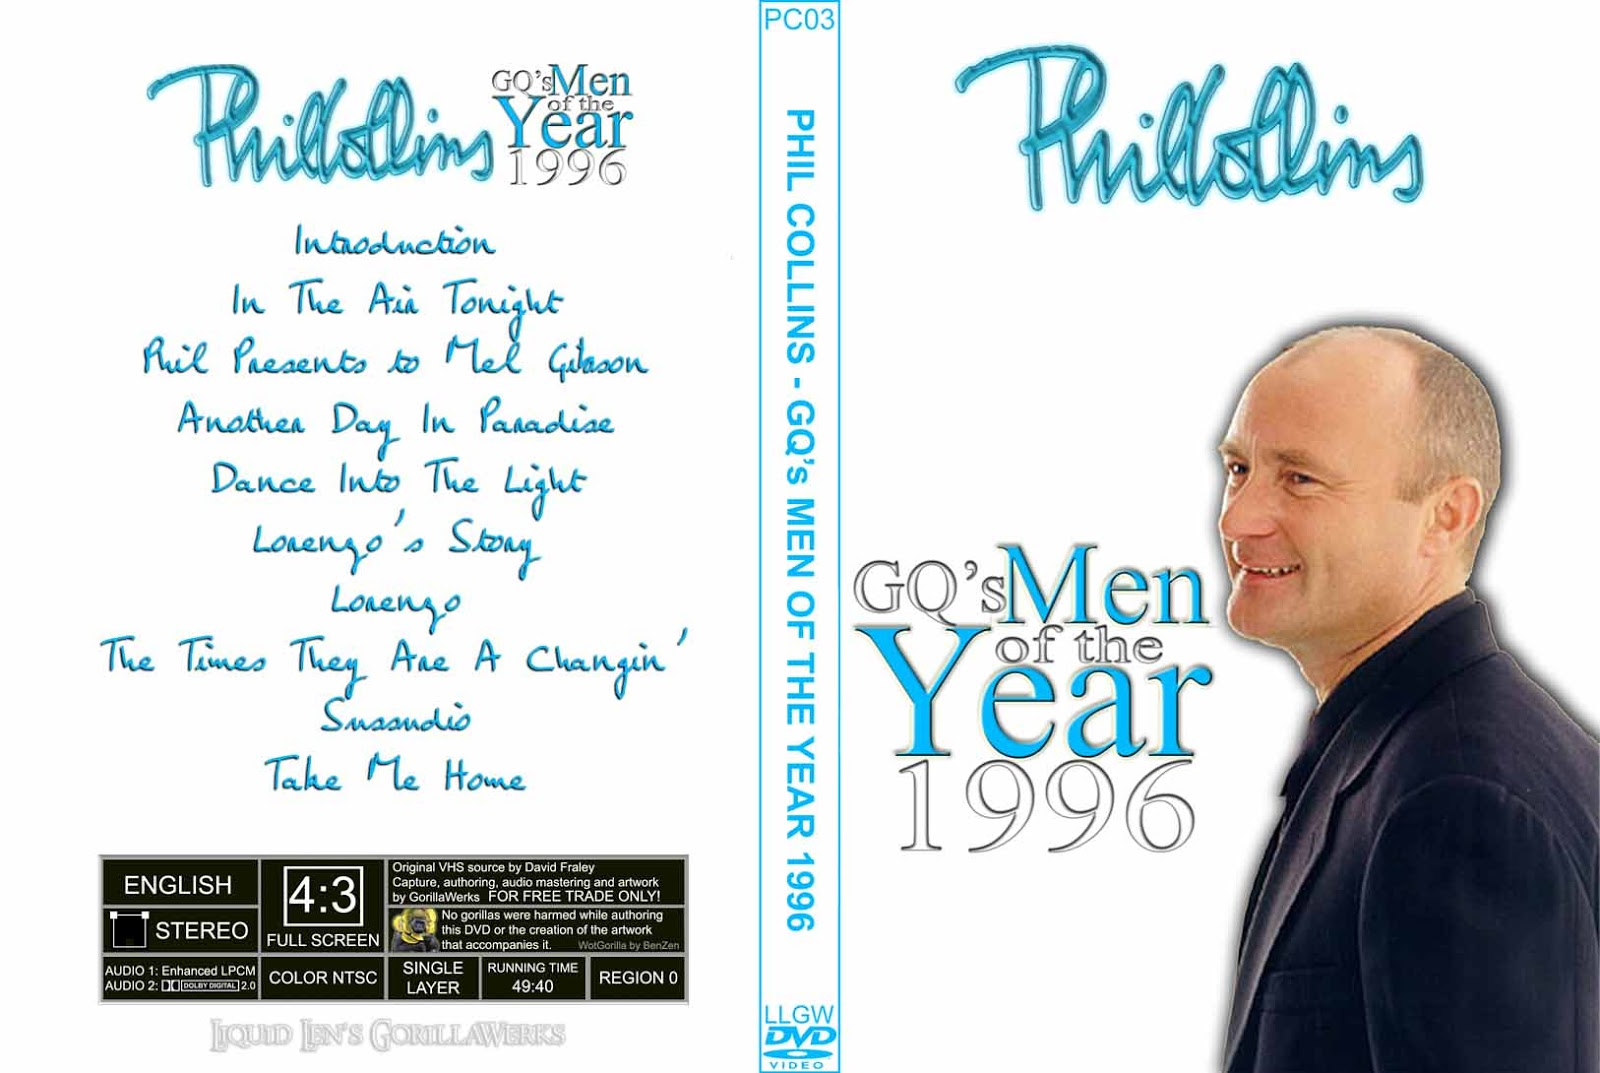 http://1.bp.blogspot.com/-Cd7zV0-U8nA/T7bfrucjwNI/AAAAAAAAF-8/kG30Yw9JeZ8/s1600/DVD+Cover+-+Phil+Collins+-+GQ%27s+Men+Of+The+Year+1996.jpg